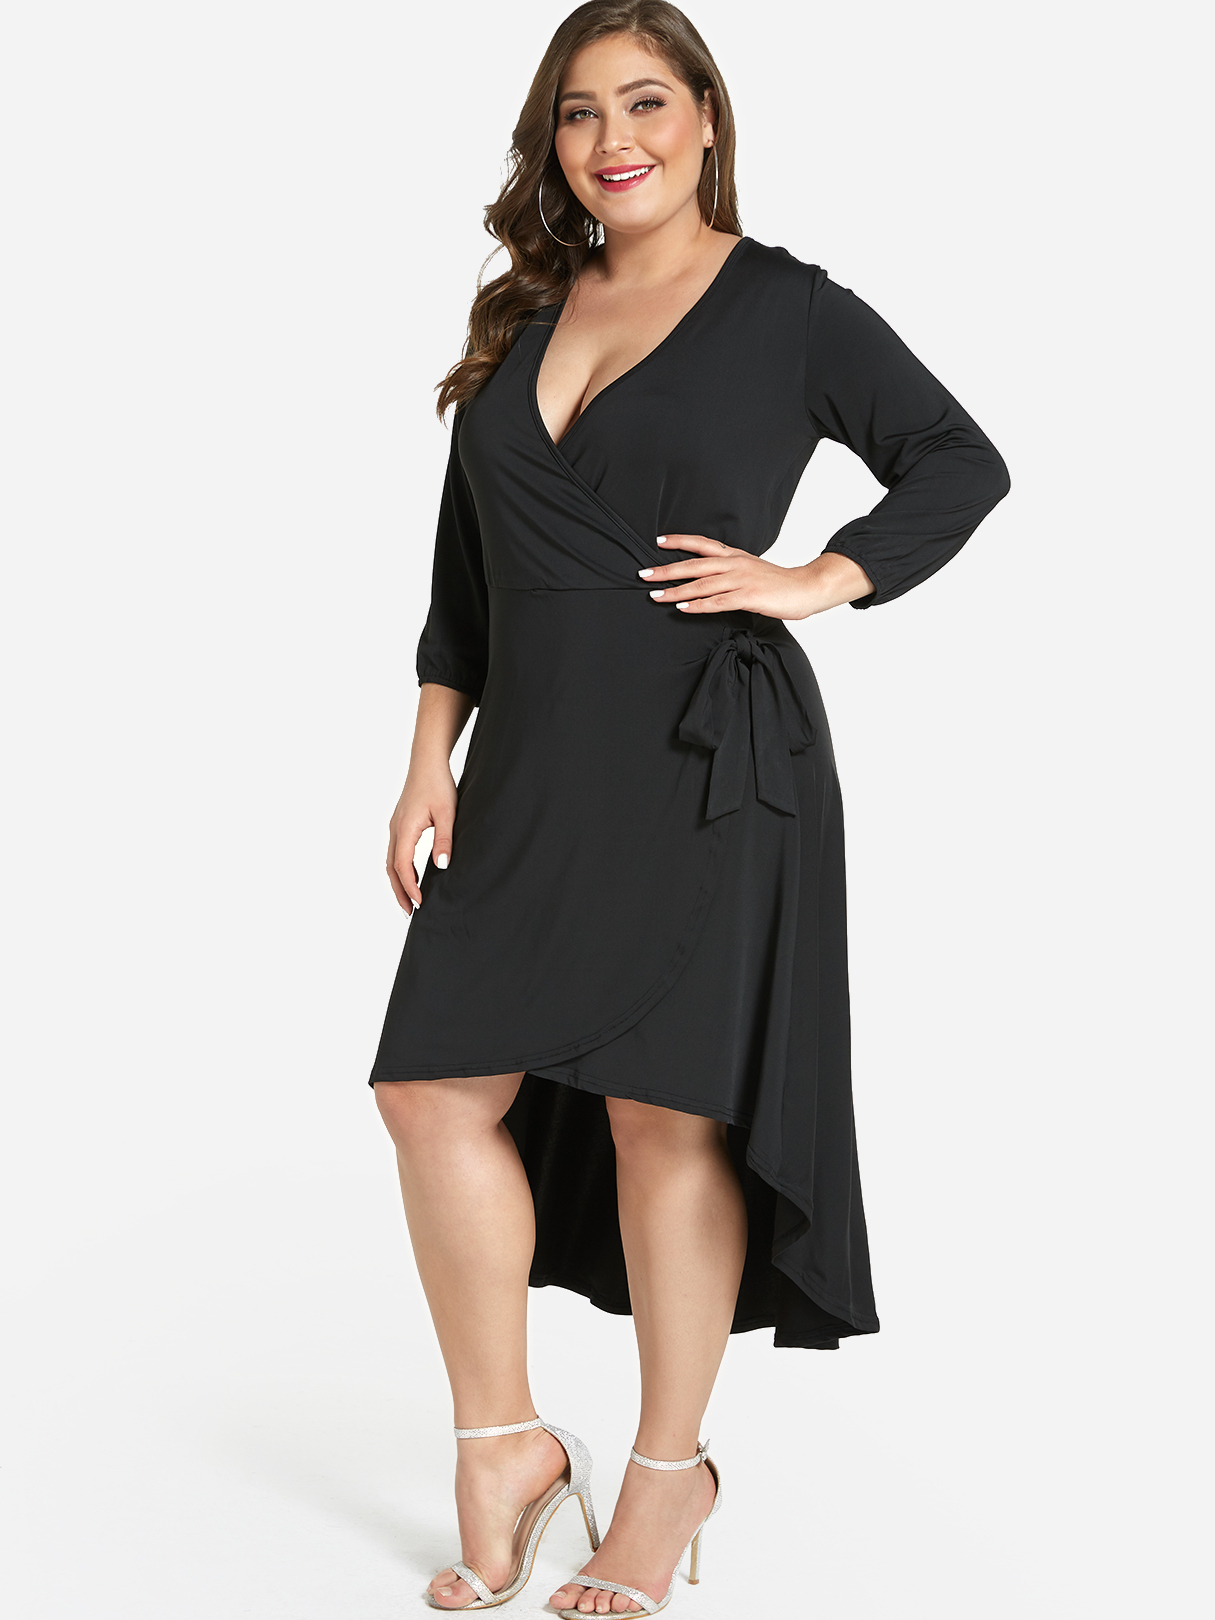 Plus Size Black High-Low Hem Self-Tie Dress